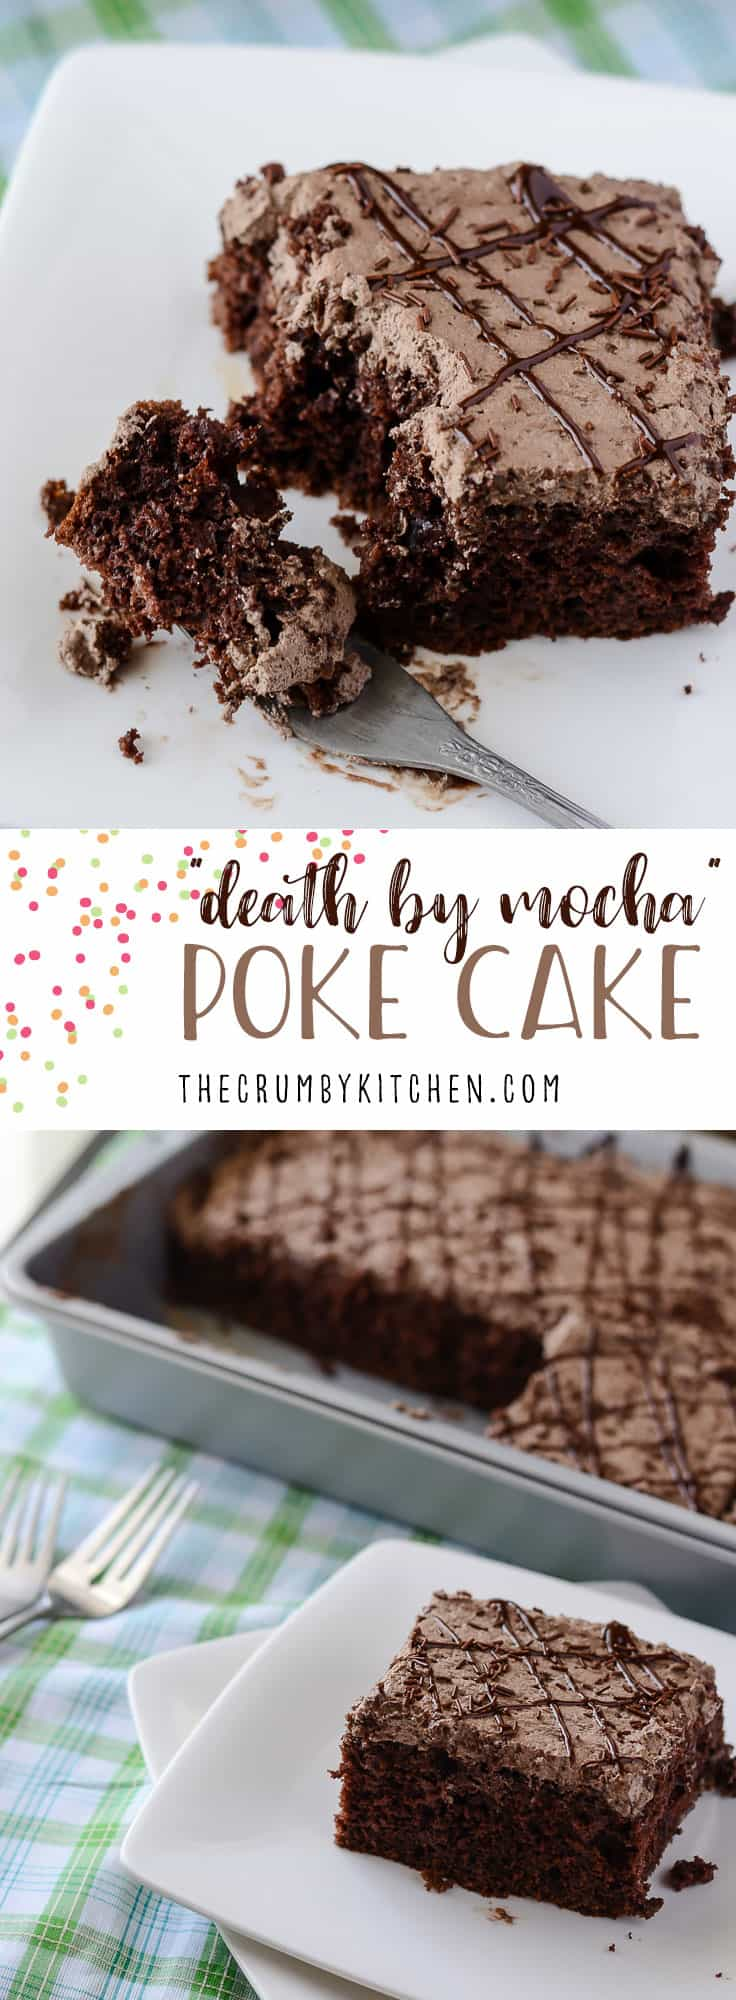 This Death By Mocha Poke Cake is a devilish little chocolate cake, infused and topped with Irish cream, vanilla bean, and the World's Strongest Coffee!